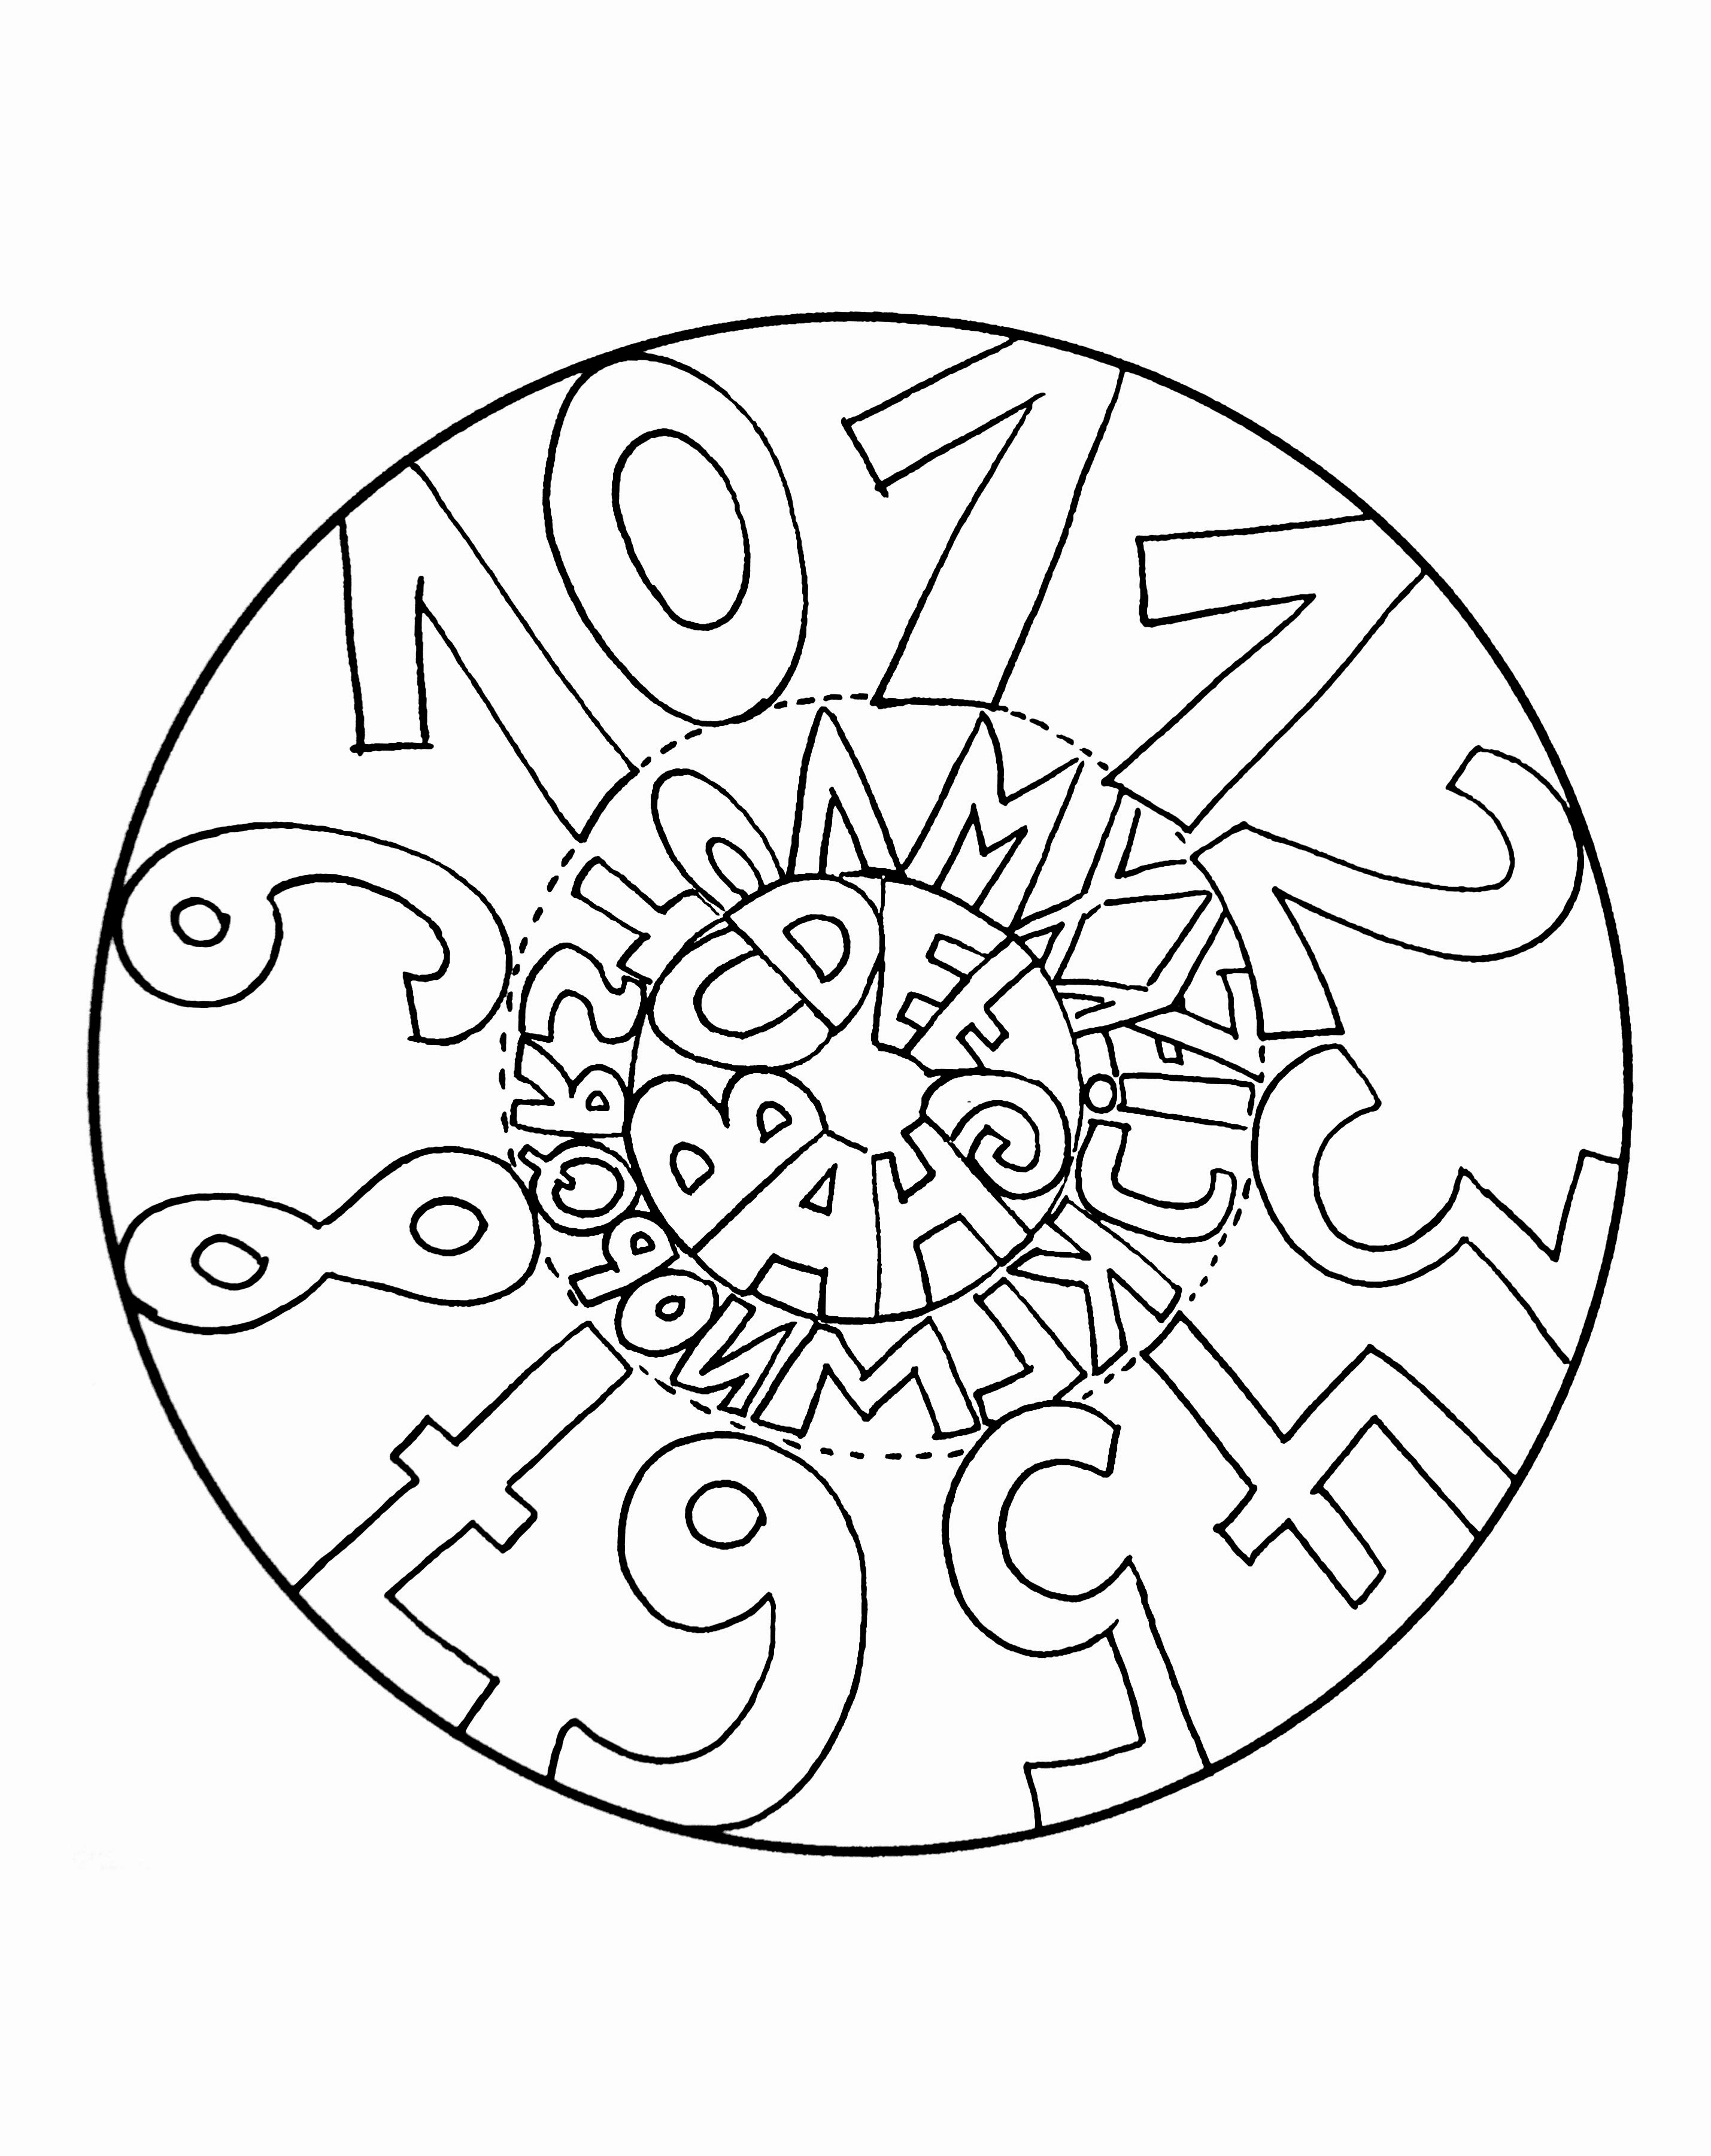 Simple mandala 23 - M&alas Coloring pages for kids to print & color